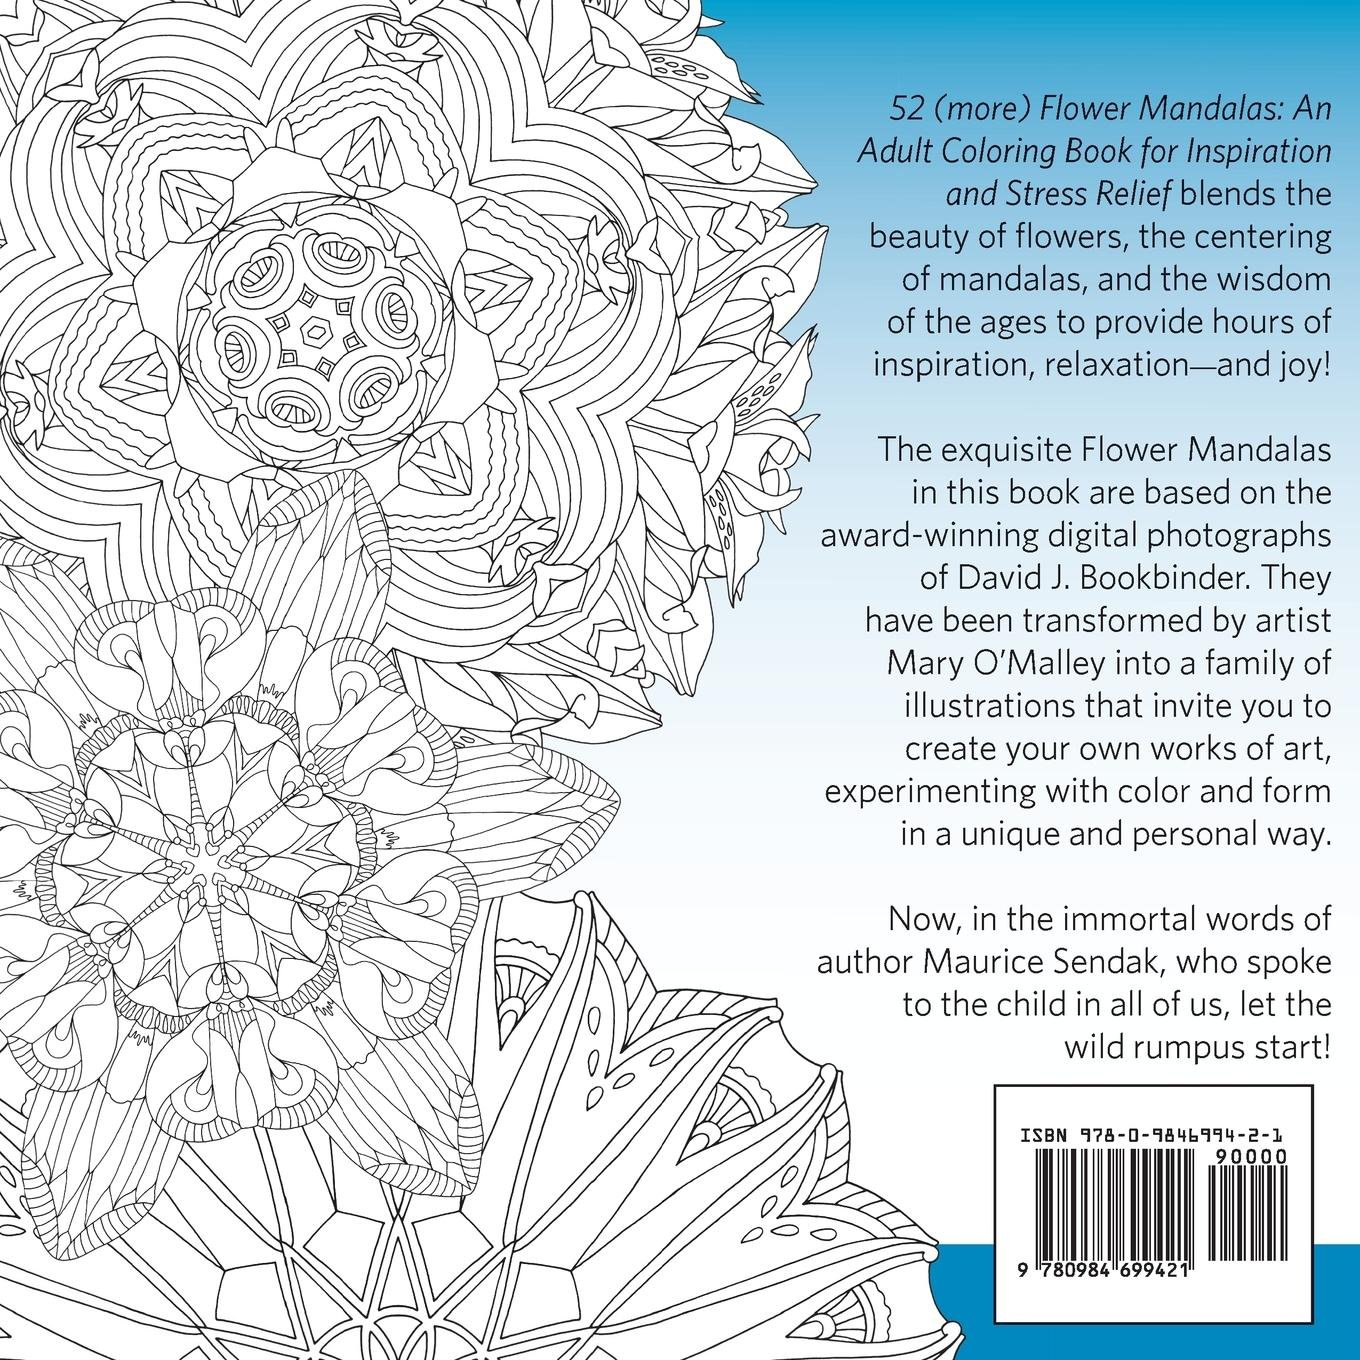 52 More Flower Mandalas An Adult Coloring Book For Inspiration And Stress Relief David J Bookbinder Mary OMalley 9780984699421 Amazon Books